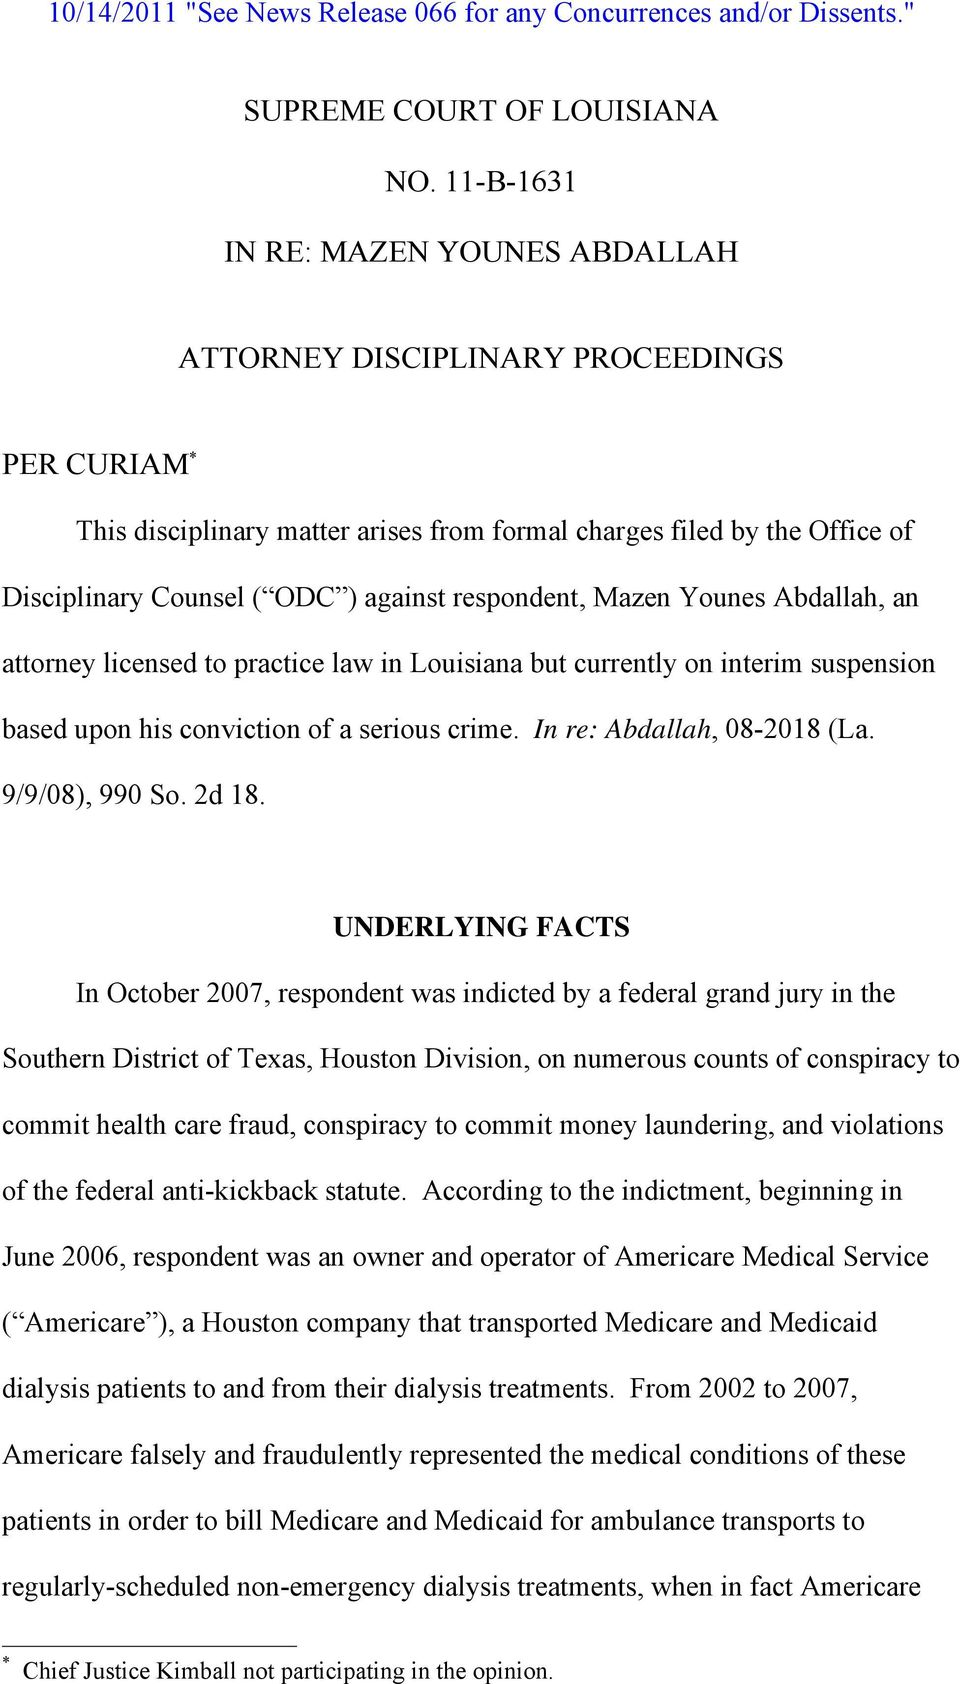 respondent, Mazen Younes Abdallah, an attorney licensed to practice law in Louisiana but currently on interim suspension based upon his conviction of a serious crime. In re: Abdallah, 08-2018 (La.